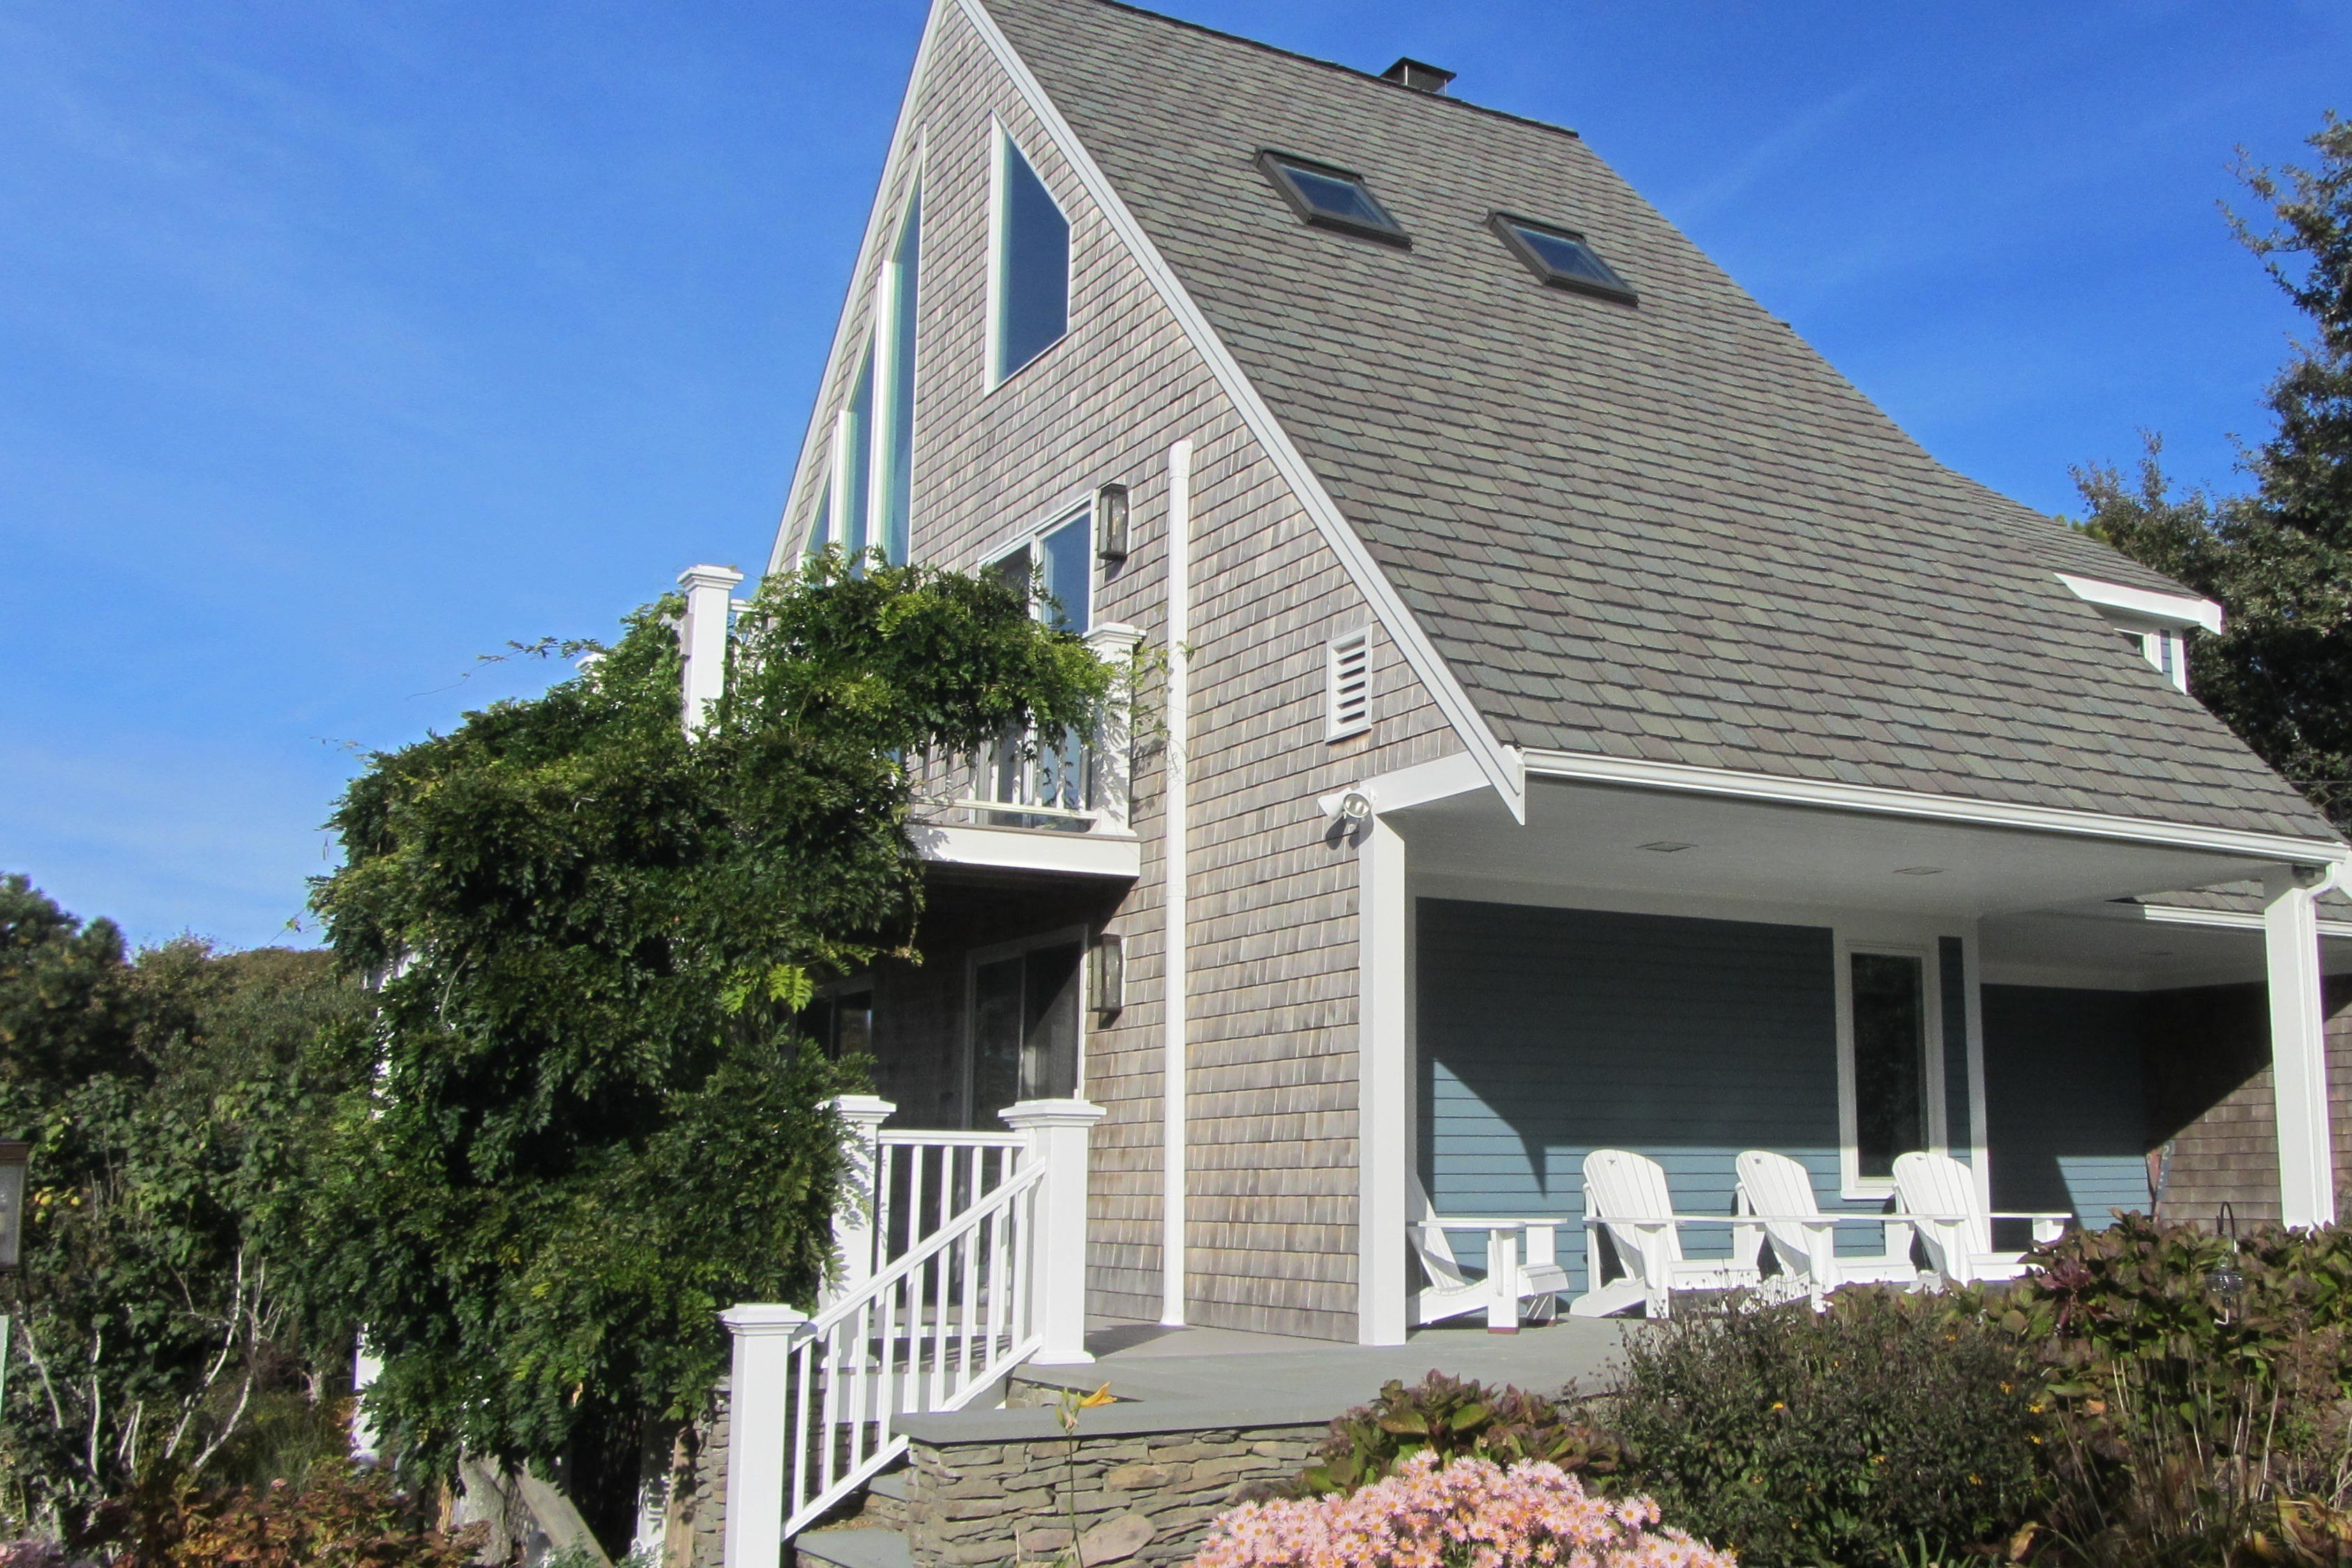 Single Family Home for Sale at BAY VIEW BEACH HOUSE 52 Jonathan Drive Dennis, Massachusetts, 02638 United States